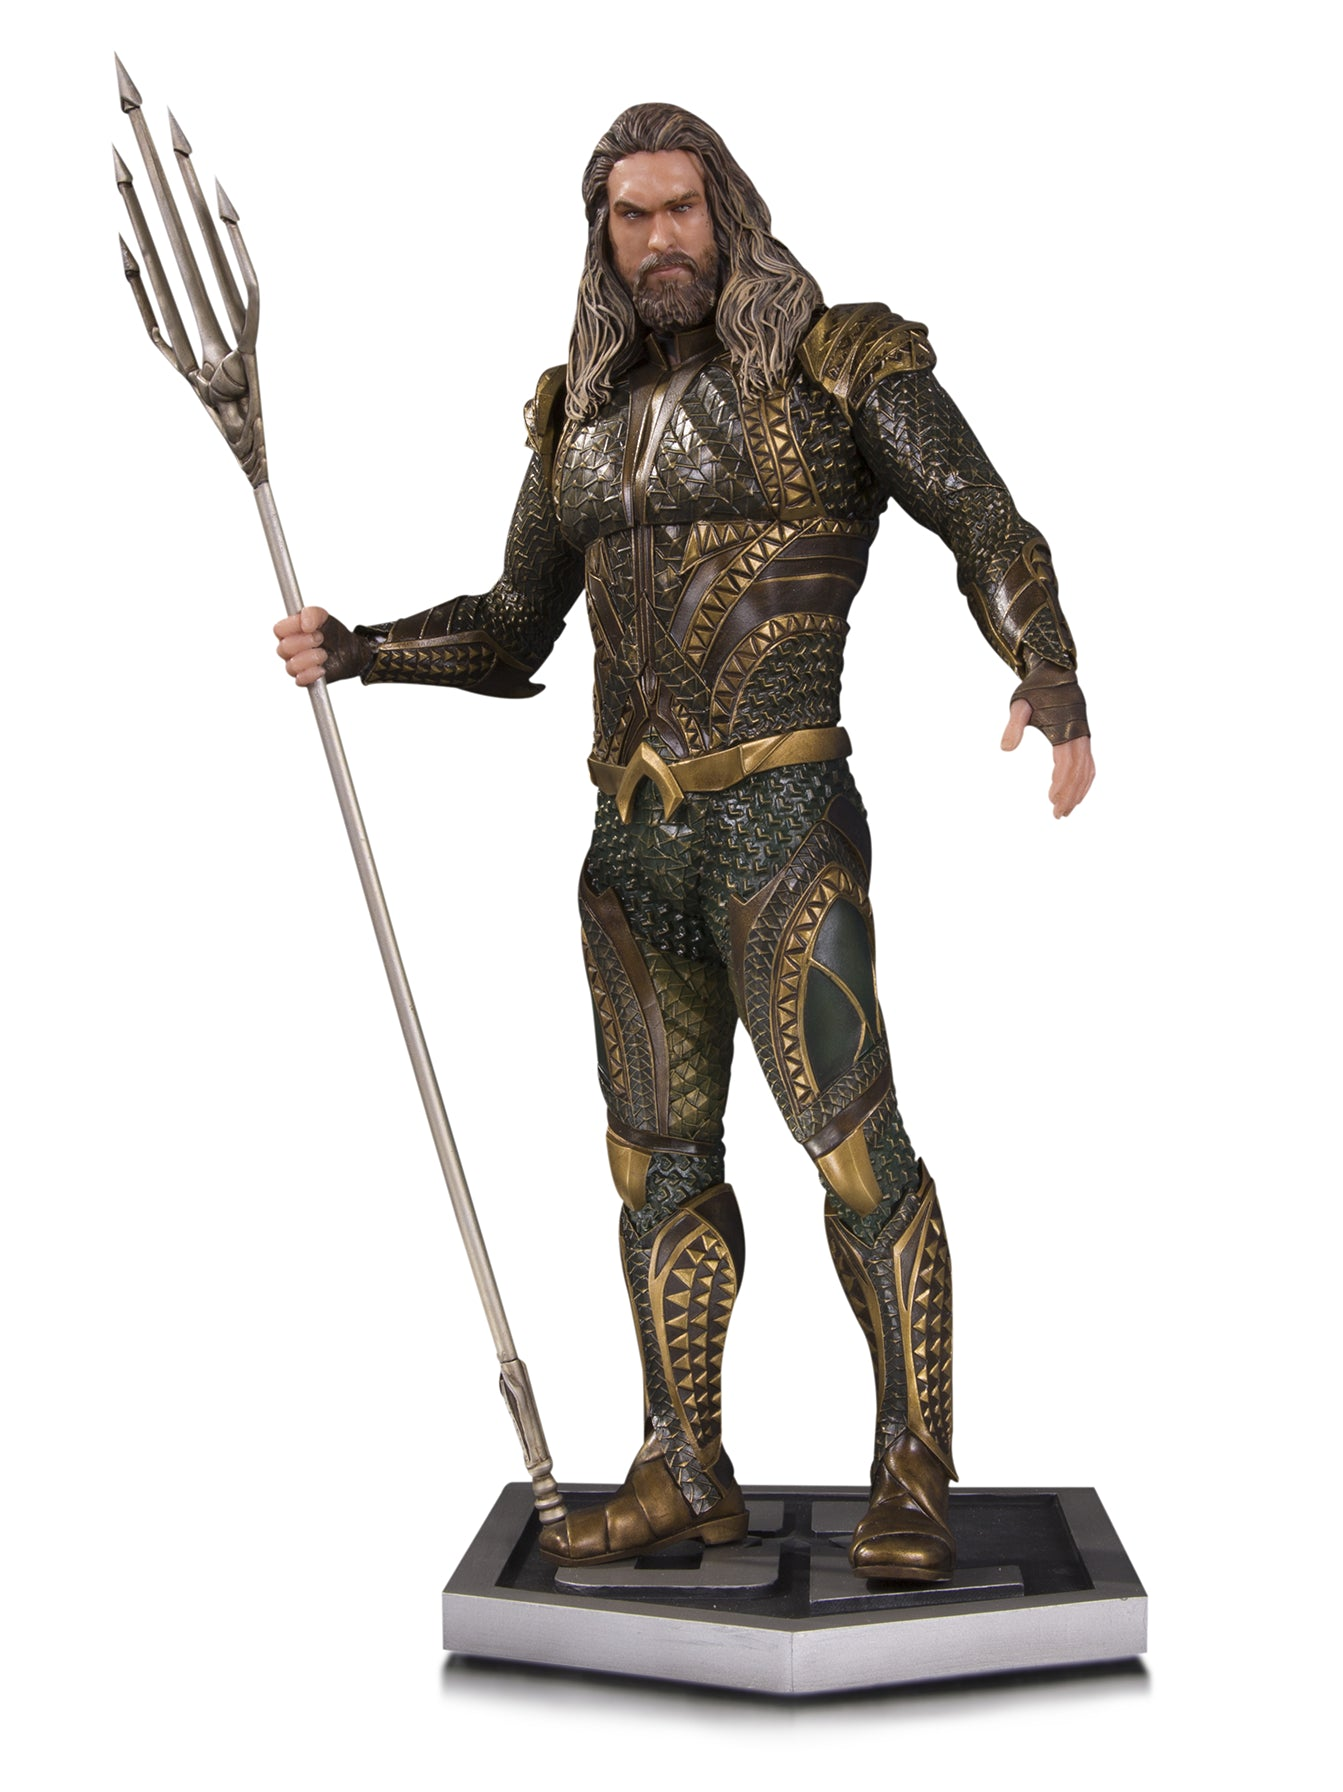 Justice League Aquaman Movie Statue